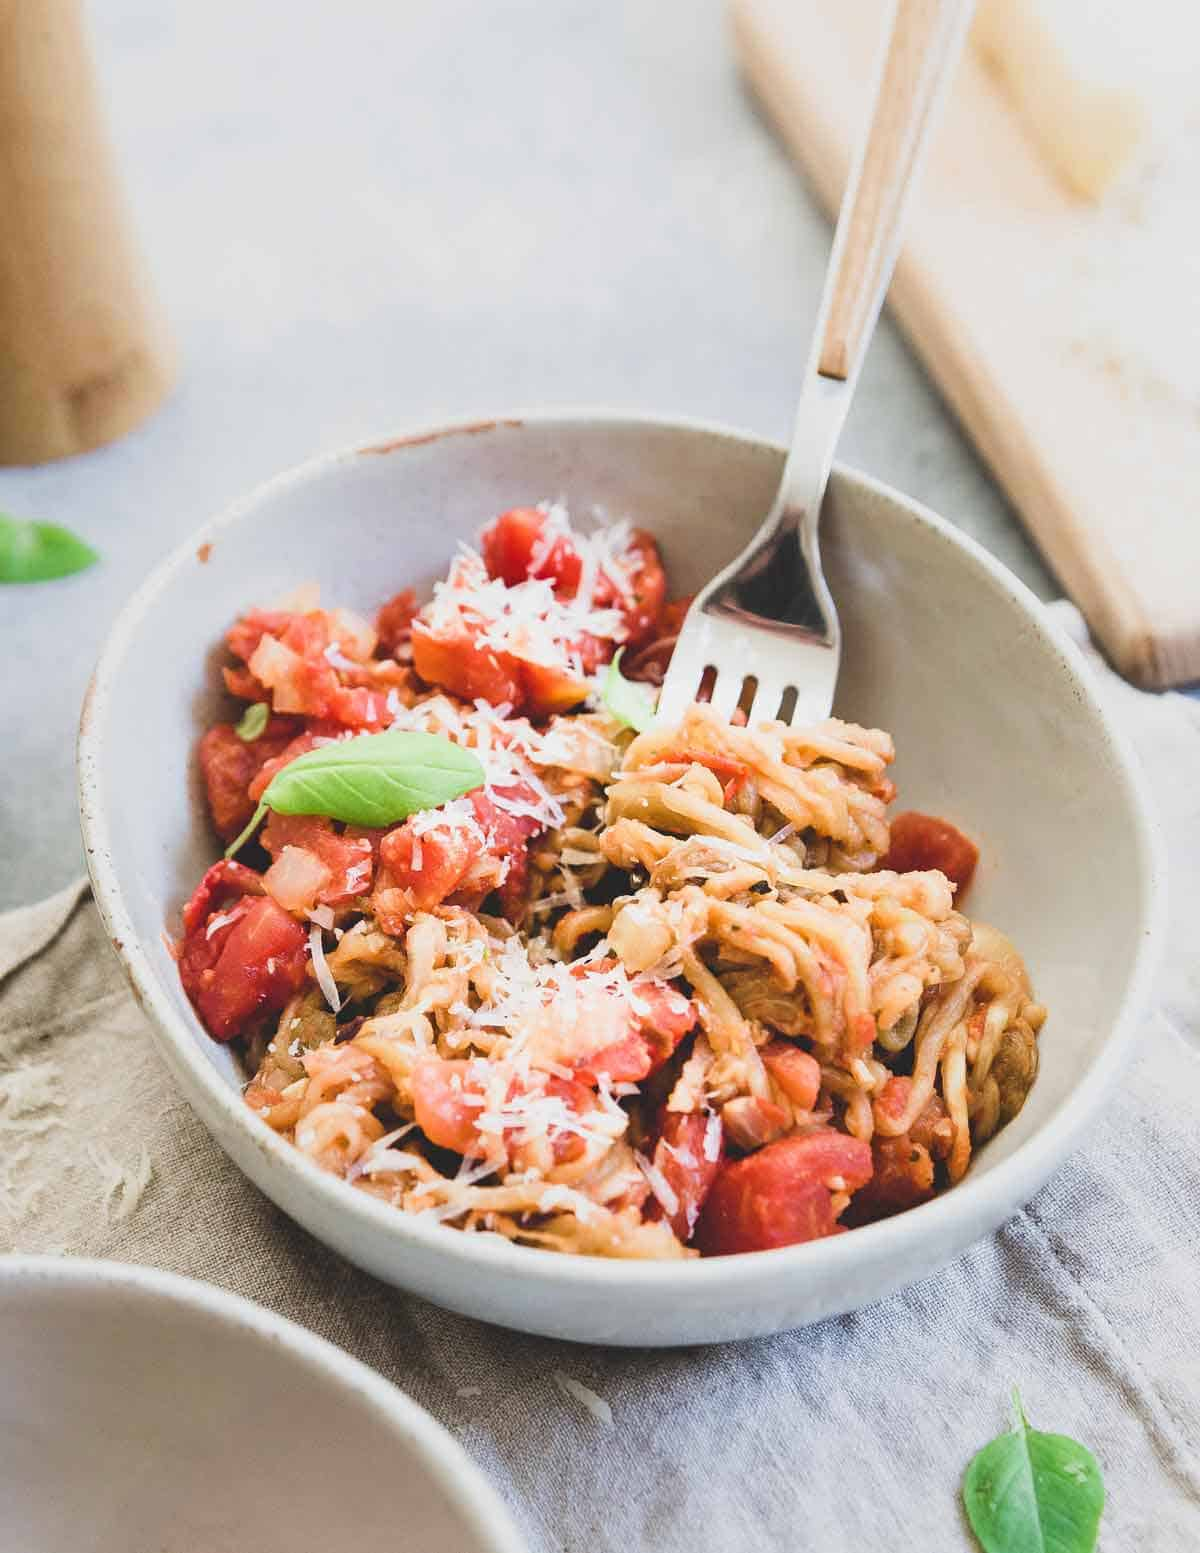 Spiralized eggplant is a lower carb alternative to pasta in this easy meatless meal.